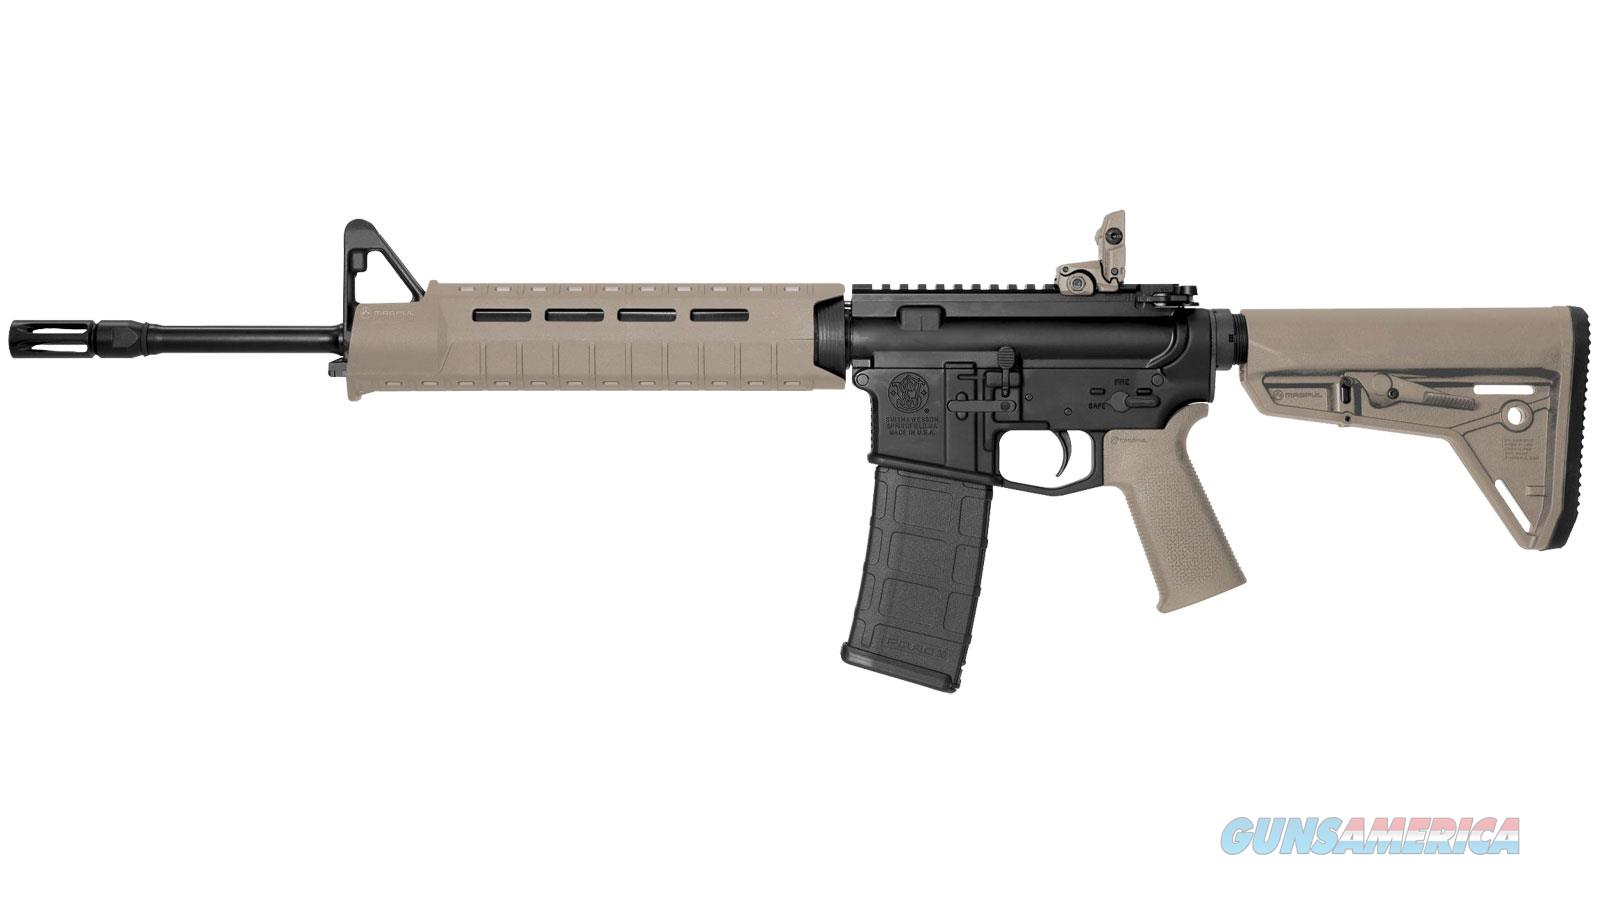 SMITH & WESSON M&P15MOE SL MID 5.56 16 MAGPUL SPEC FDE 30RD 11513  Guns > Rifles > S Misc Rifles